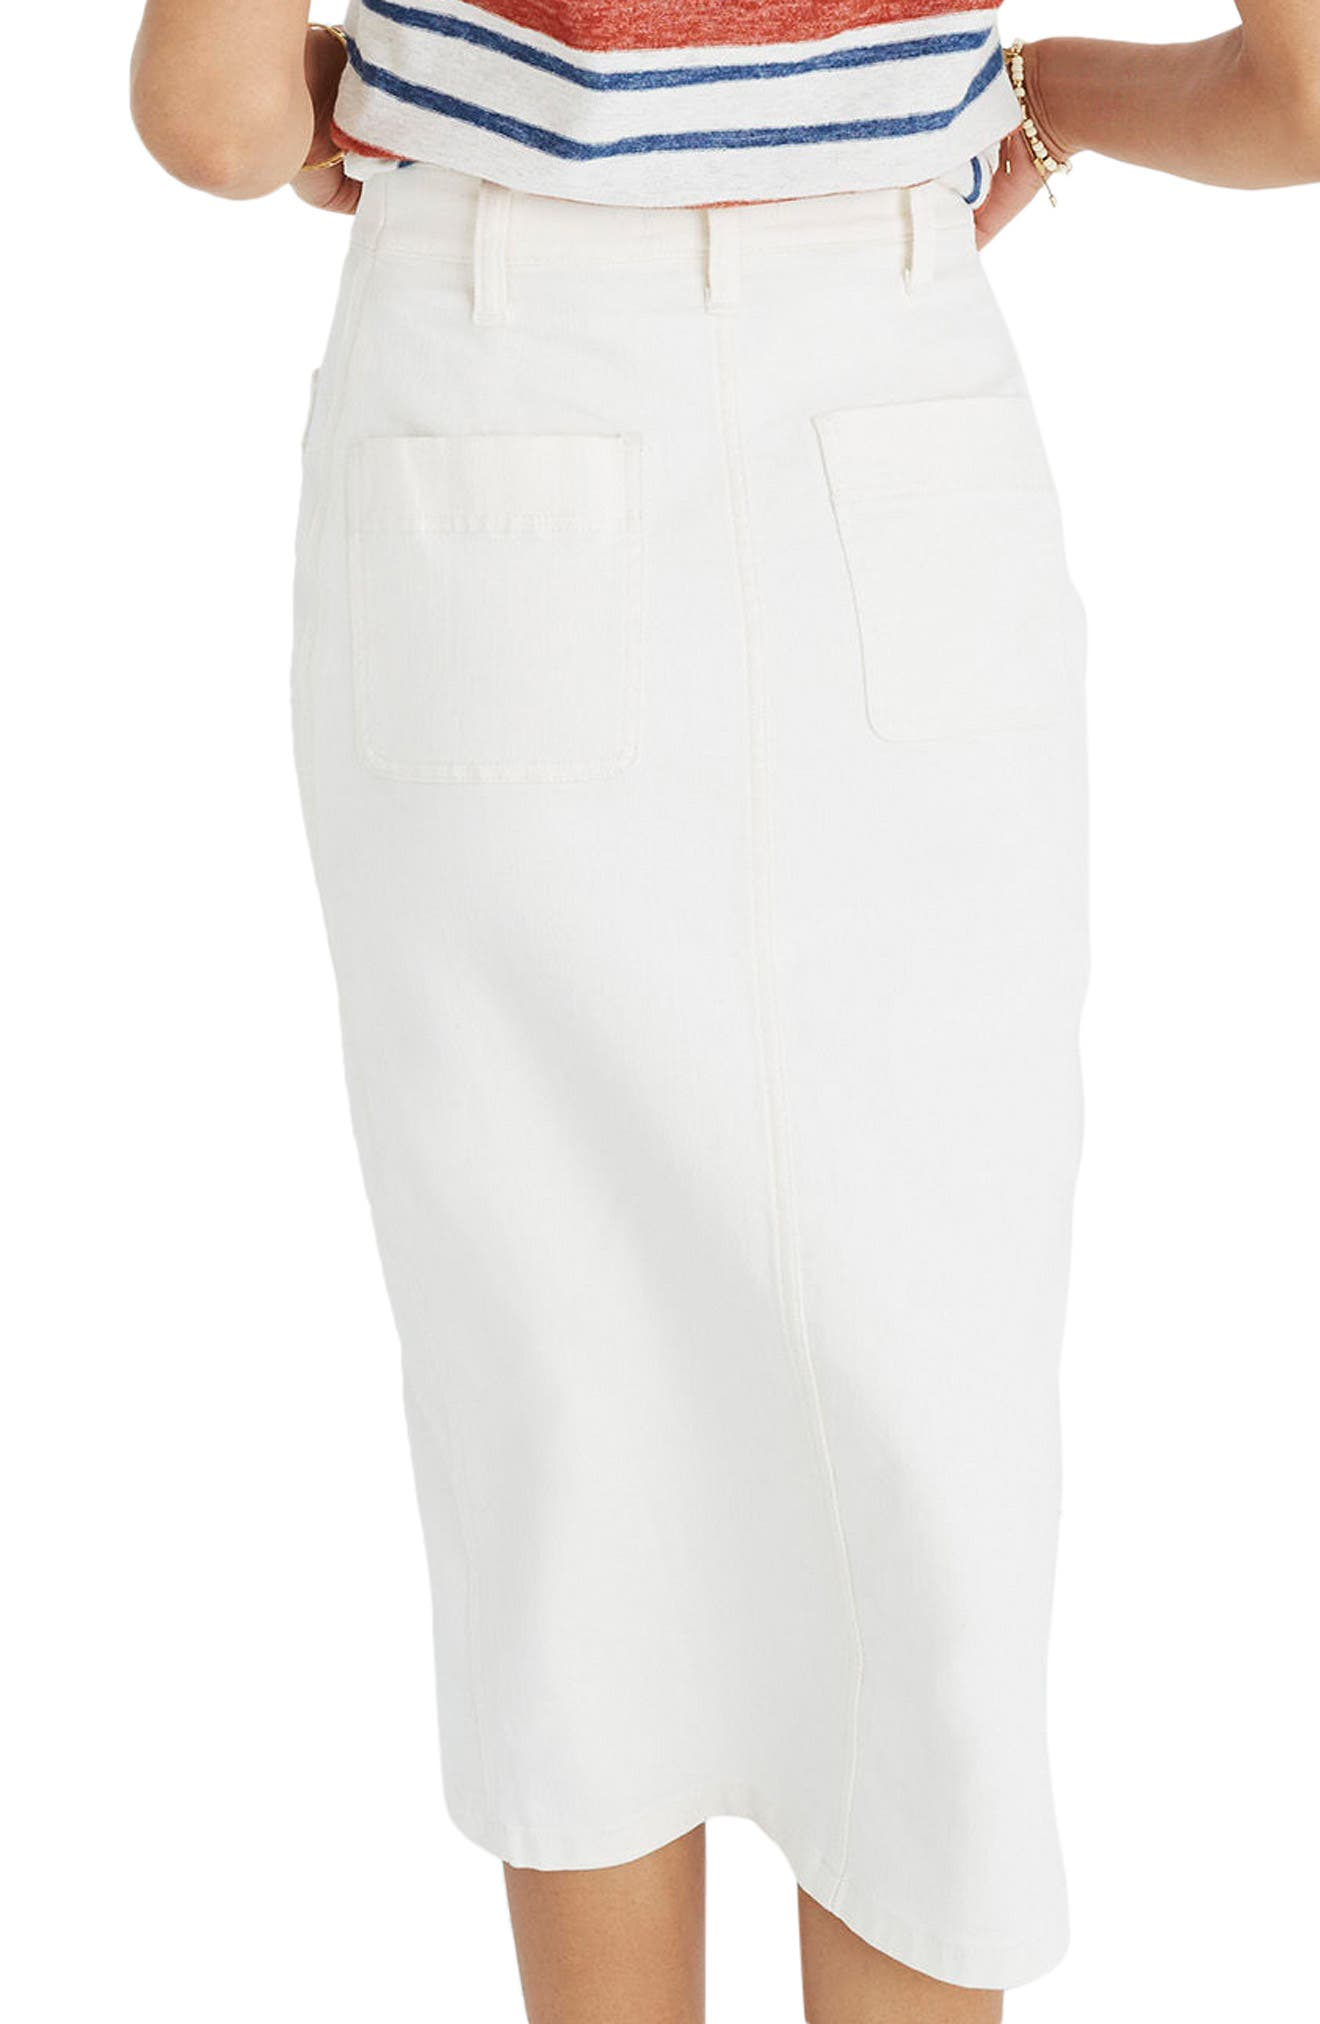 High Slit Denim Skirt,                             Alternate thumbnail 2, color,                             Tile White